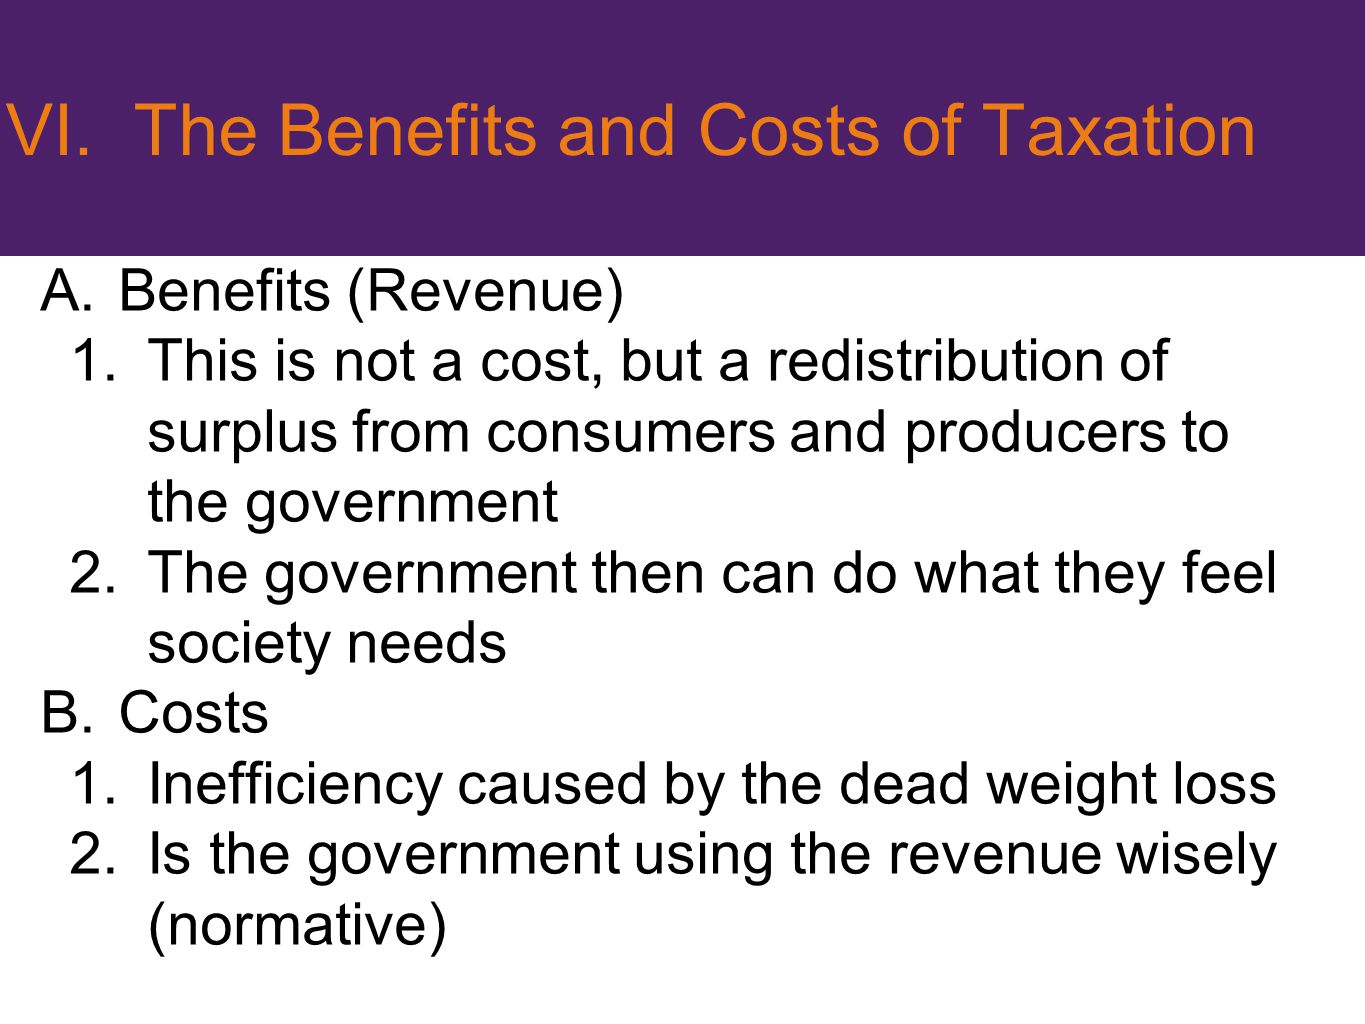 VI. The Benefits and Costs of Taxation